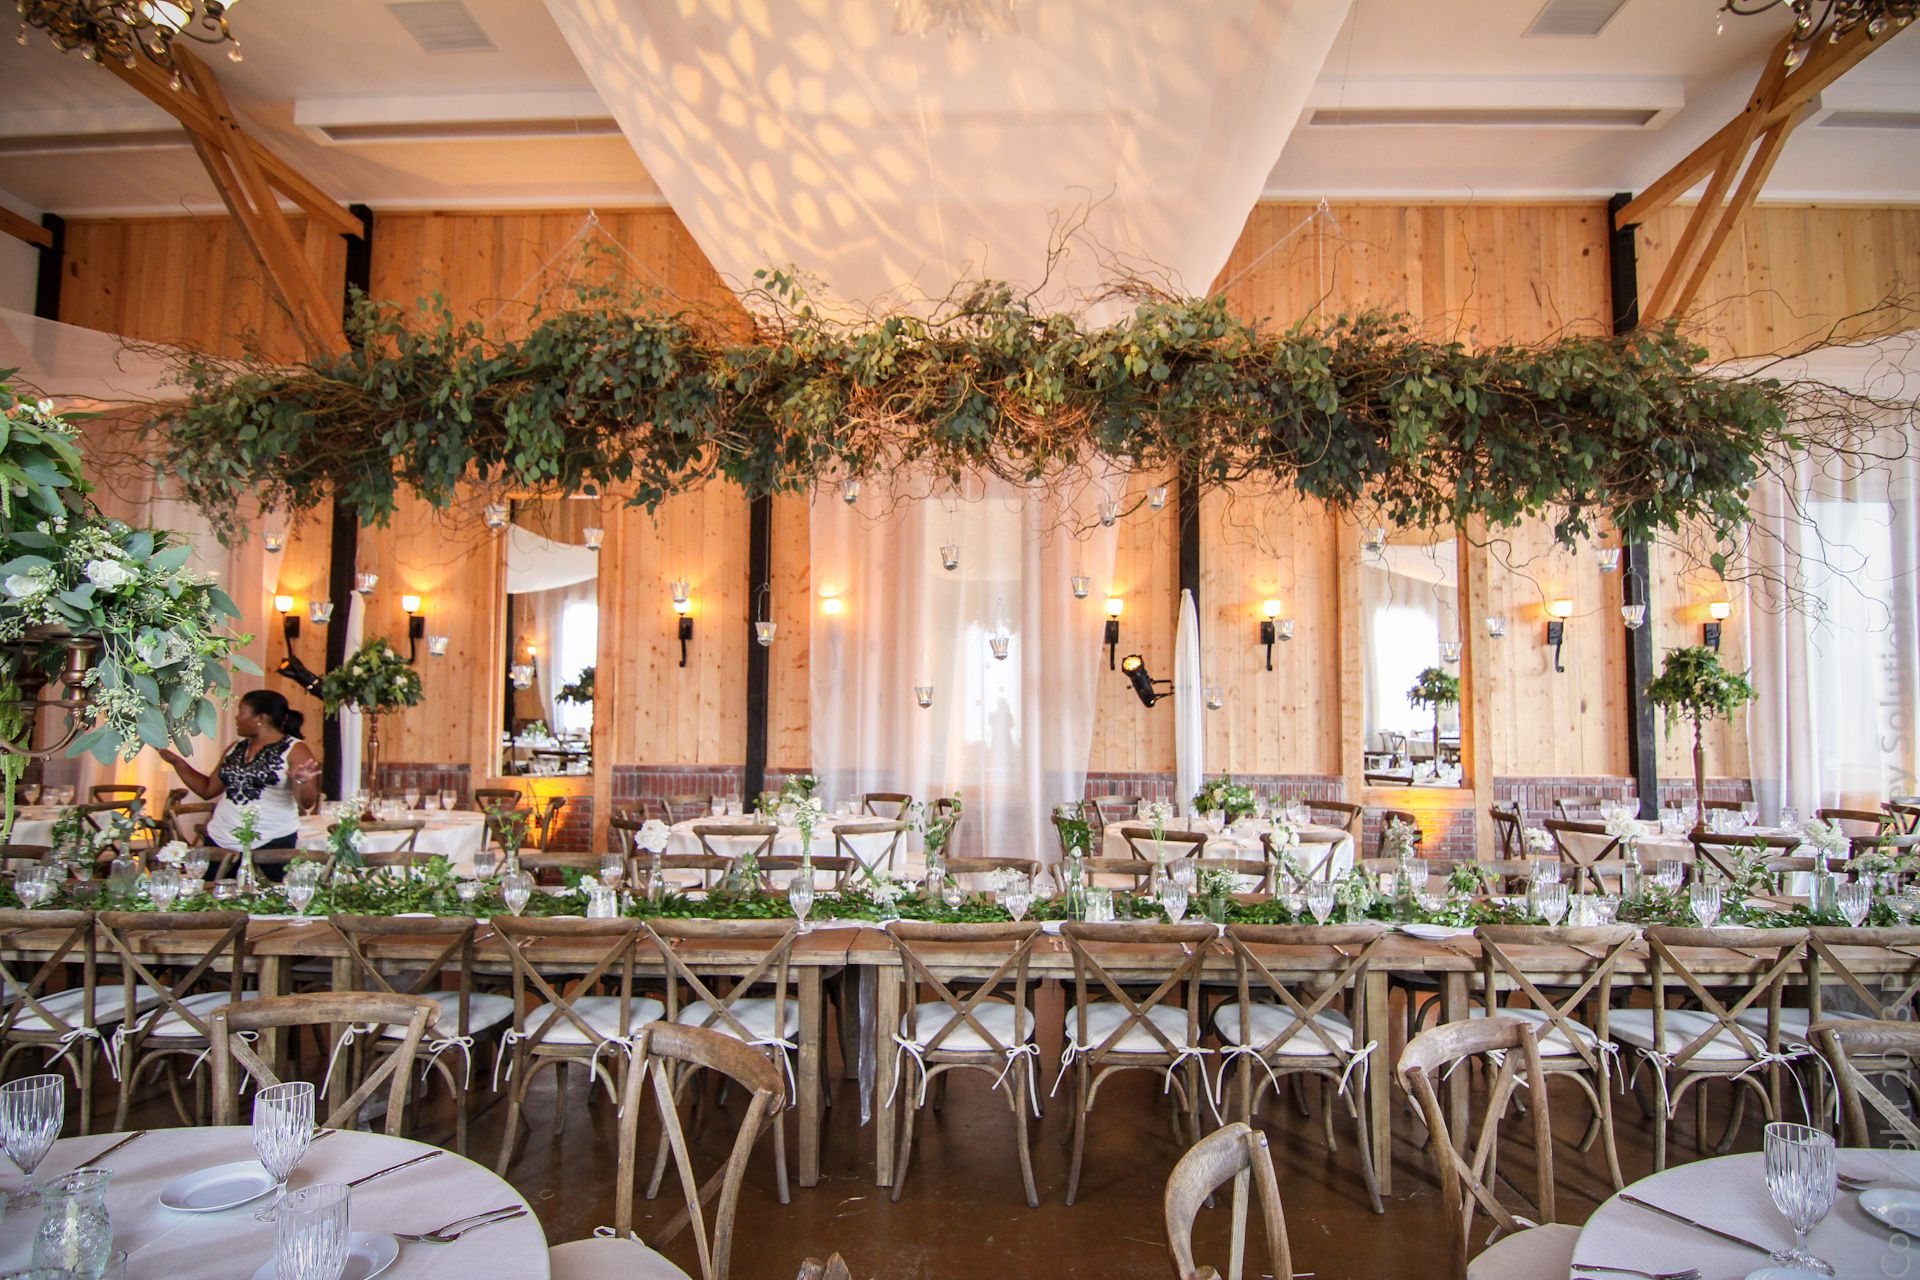 The Ultimate Guide to Wedding Rentals